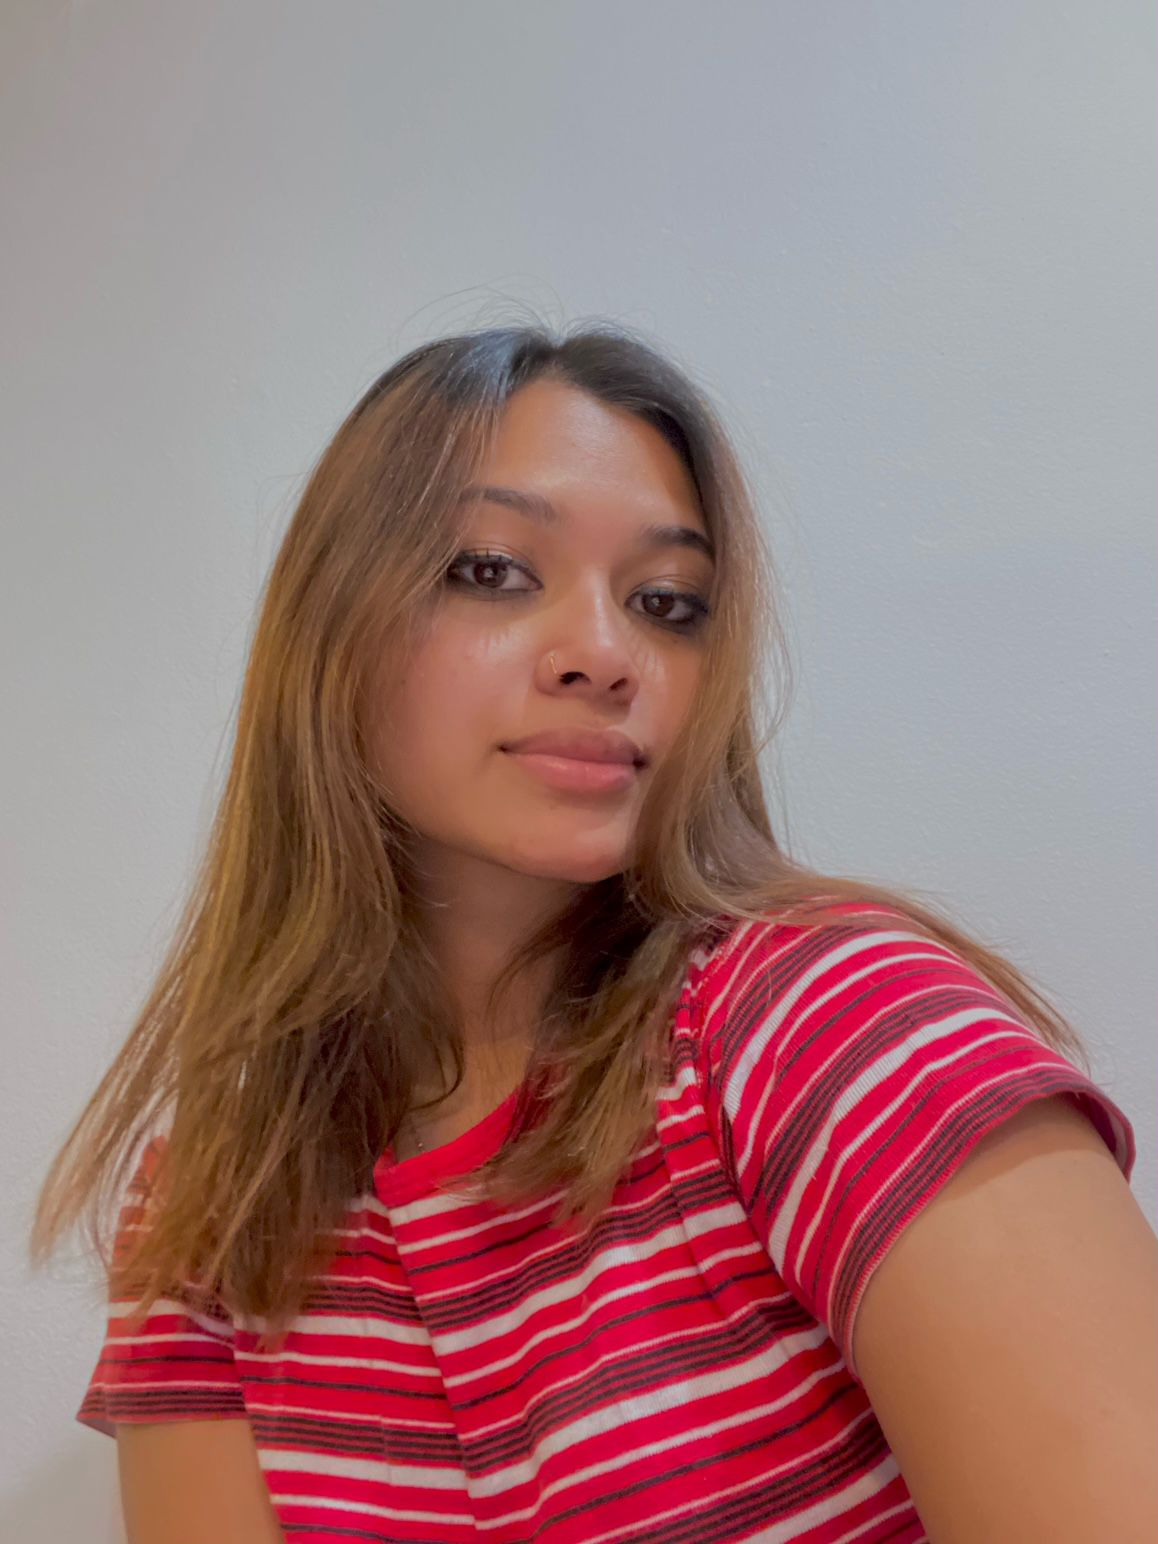 A photo of Munaja Mehzabin, 17, from Queens, New York.